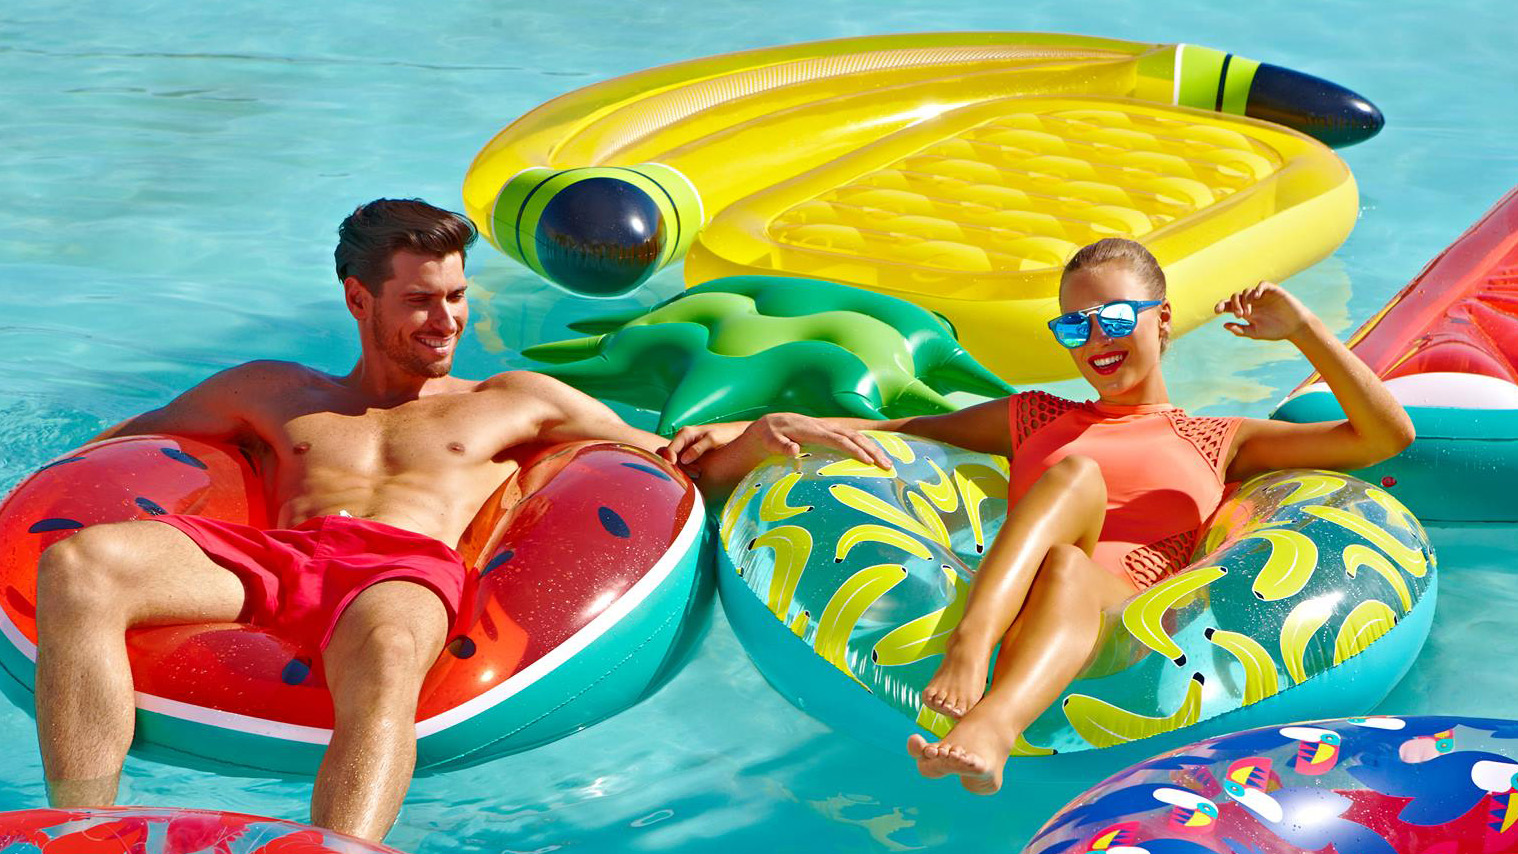 Opblaasbare premiums – Publi air Inflatables summer floats inflatable ring donut luchtbedden – zomergadgets